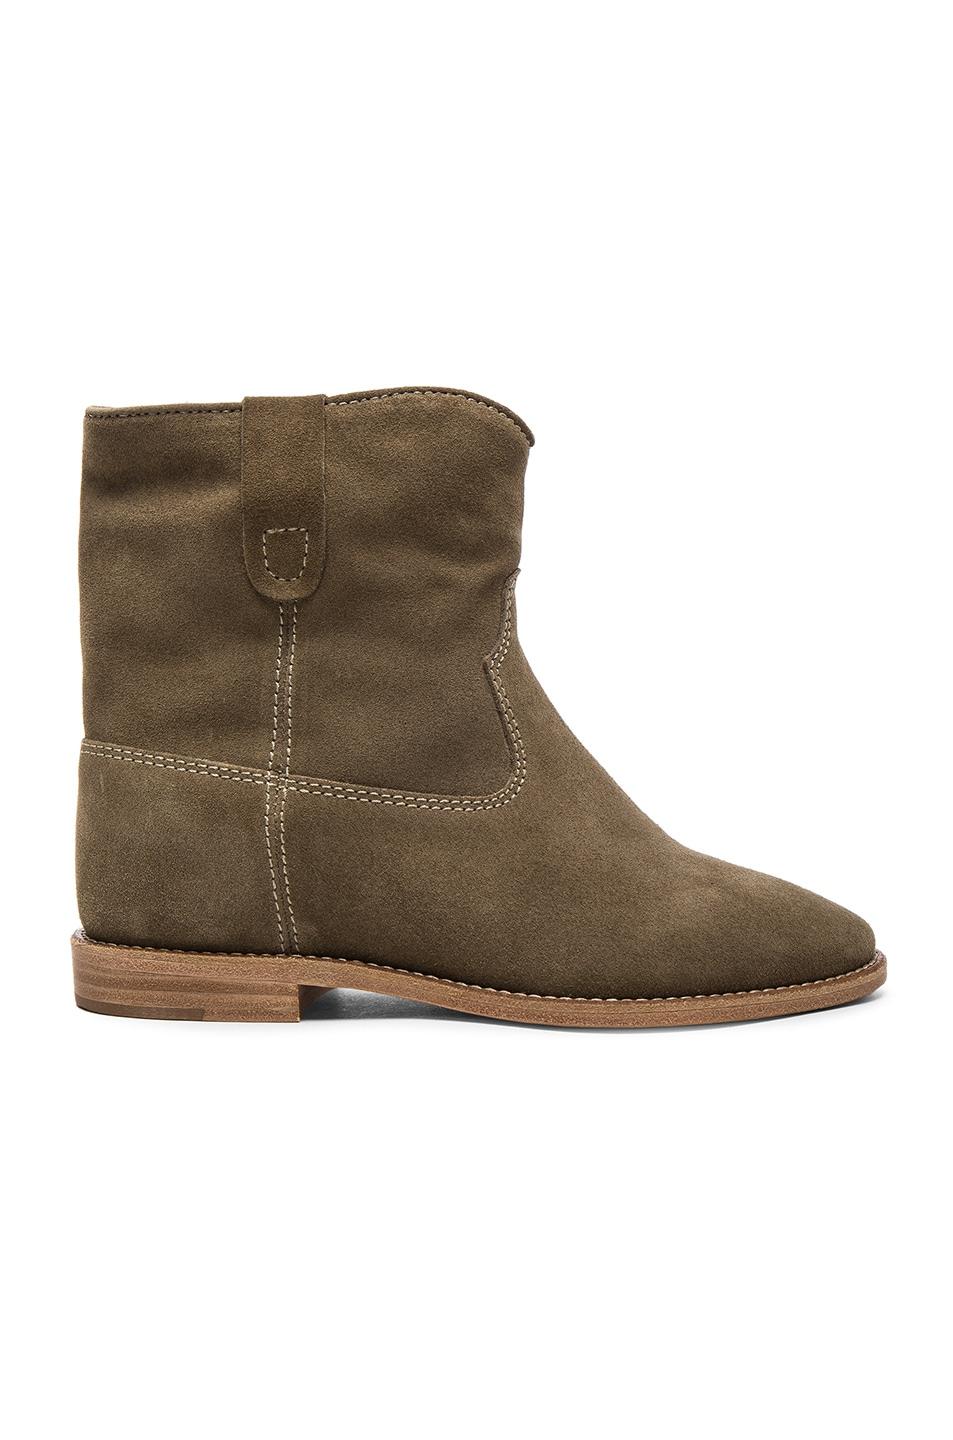 Image 1 of Isabel Marant Etoile Crisi Velvet Booties in Taupe